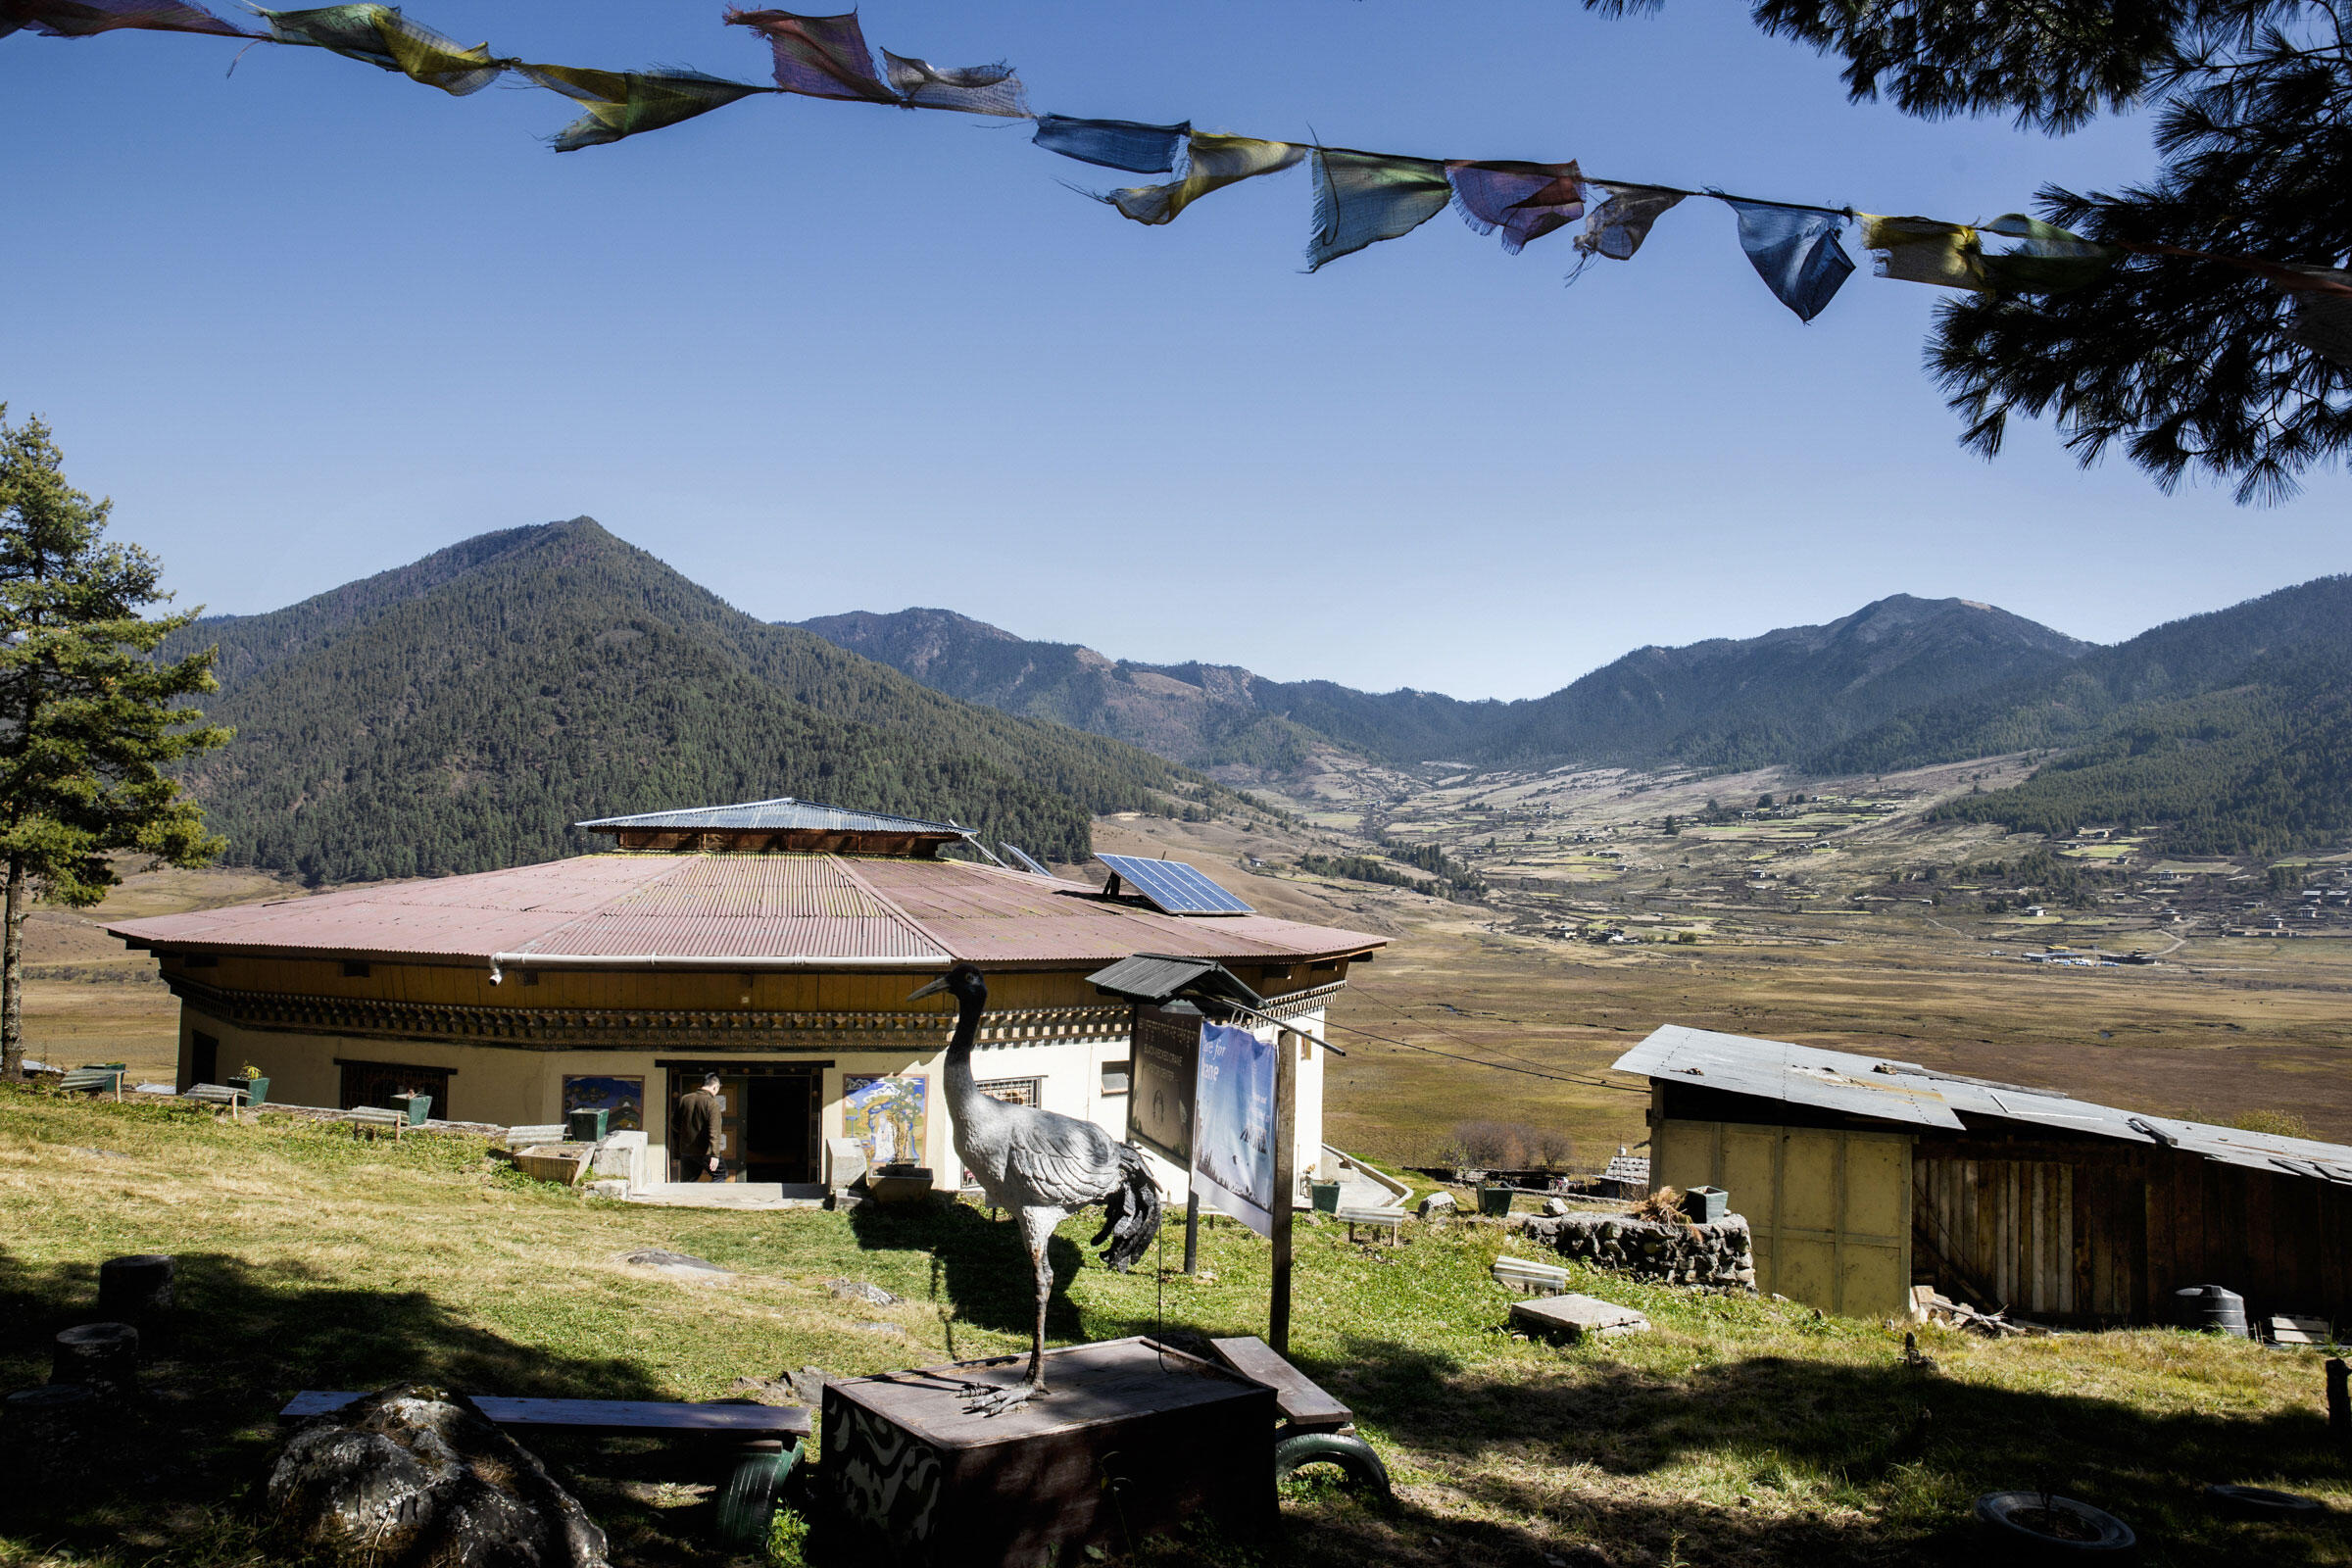 The Royal Society for Protection of Nature's (RSPN) Black-necked Crane information center in the Phobjikha Valley. Ambika Singh